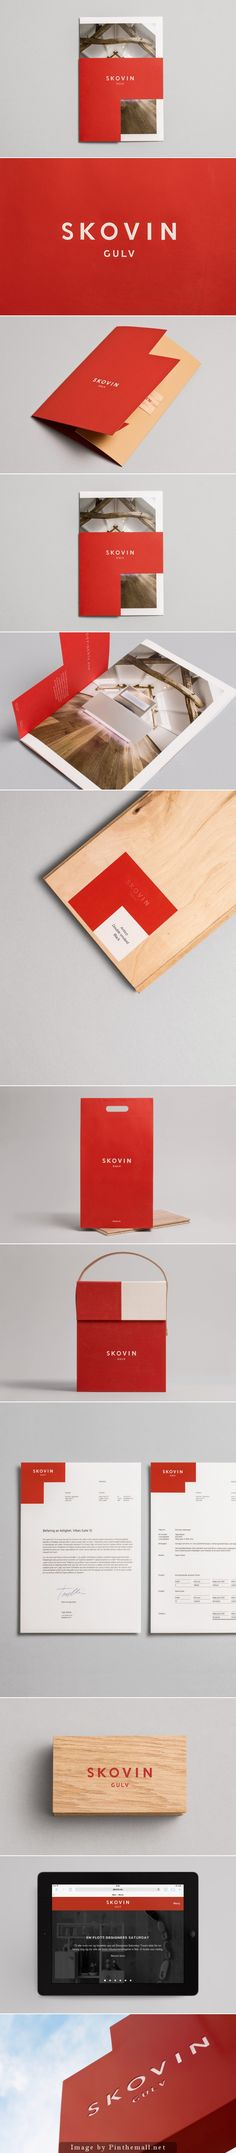 Skovin brand identity and collaterals designed by Heydays